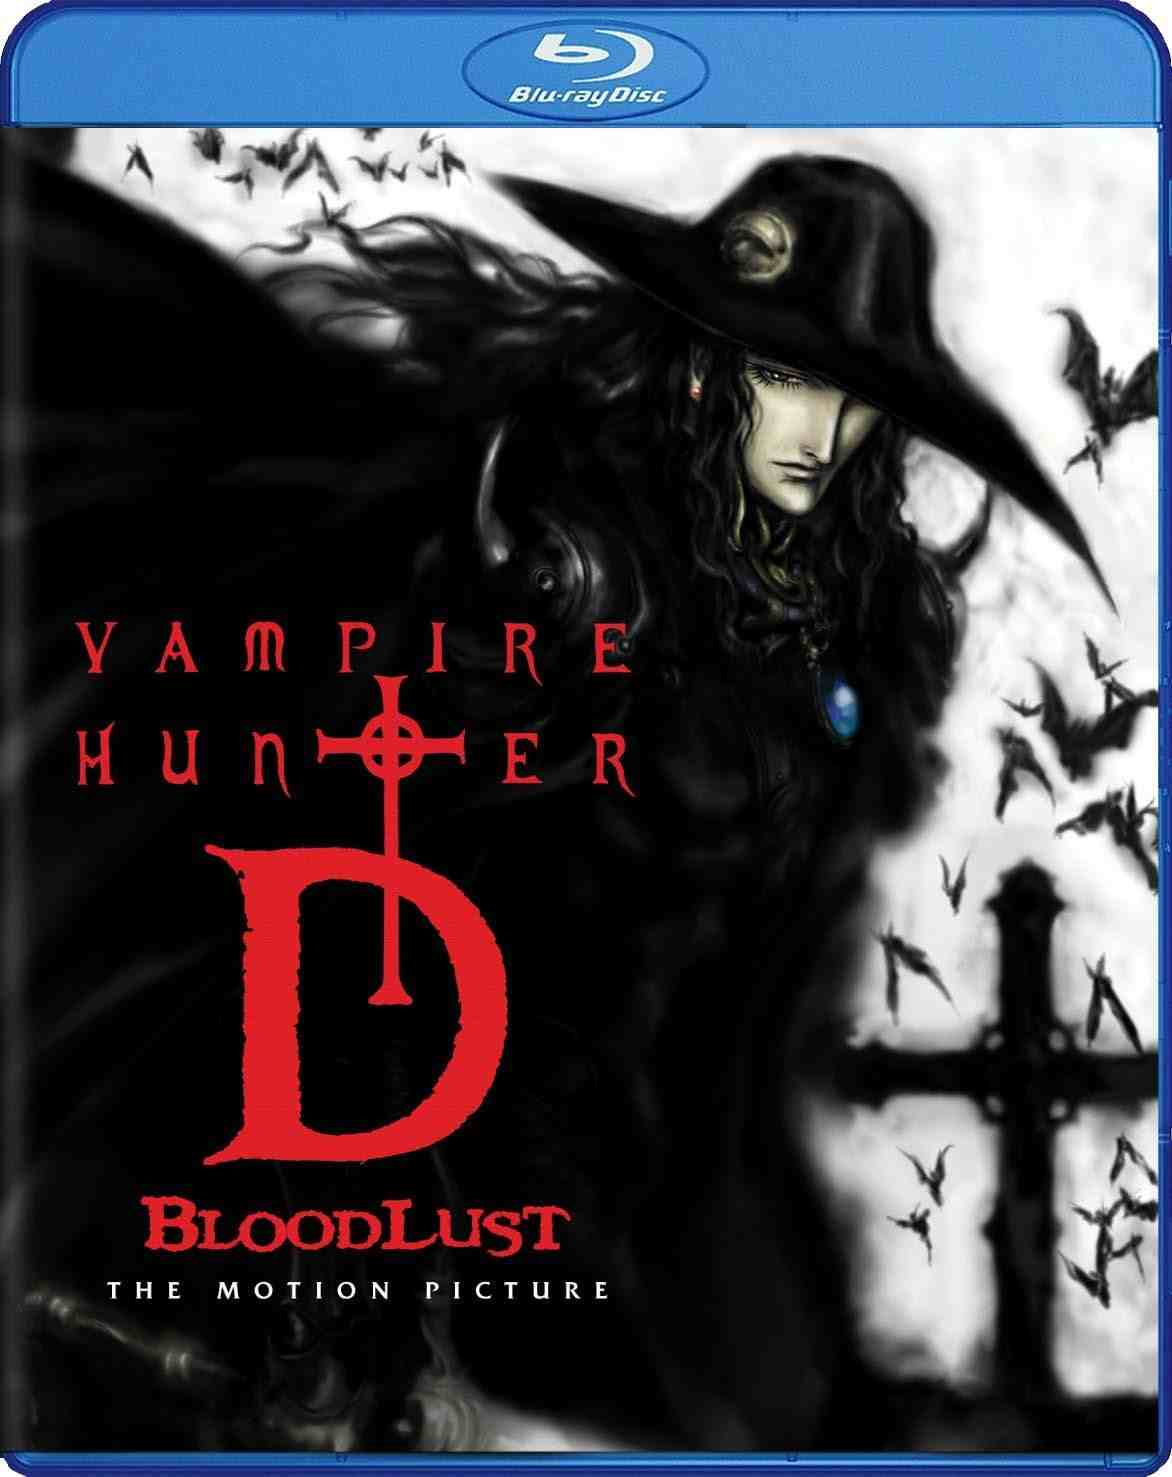 watch the new bluray rerelease trailer for vampire